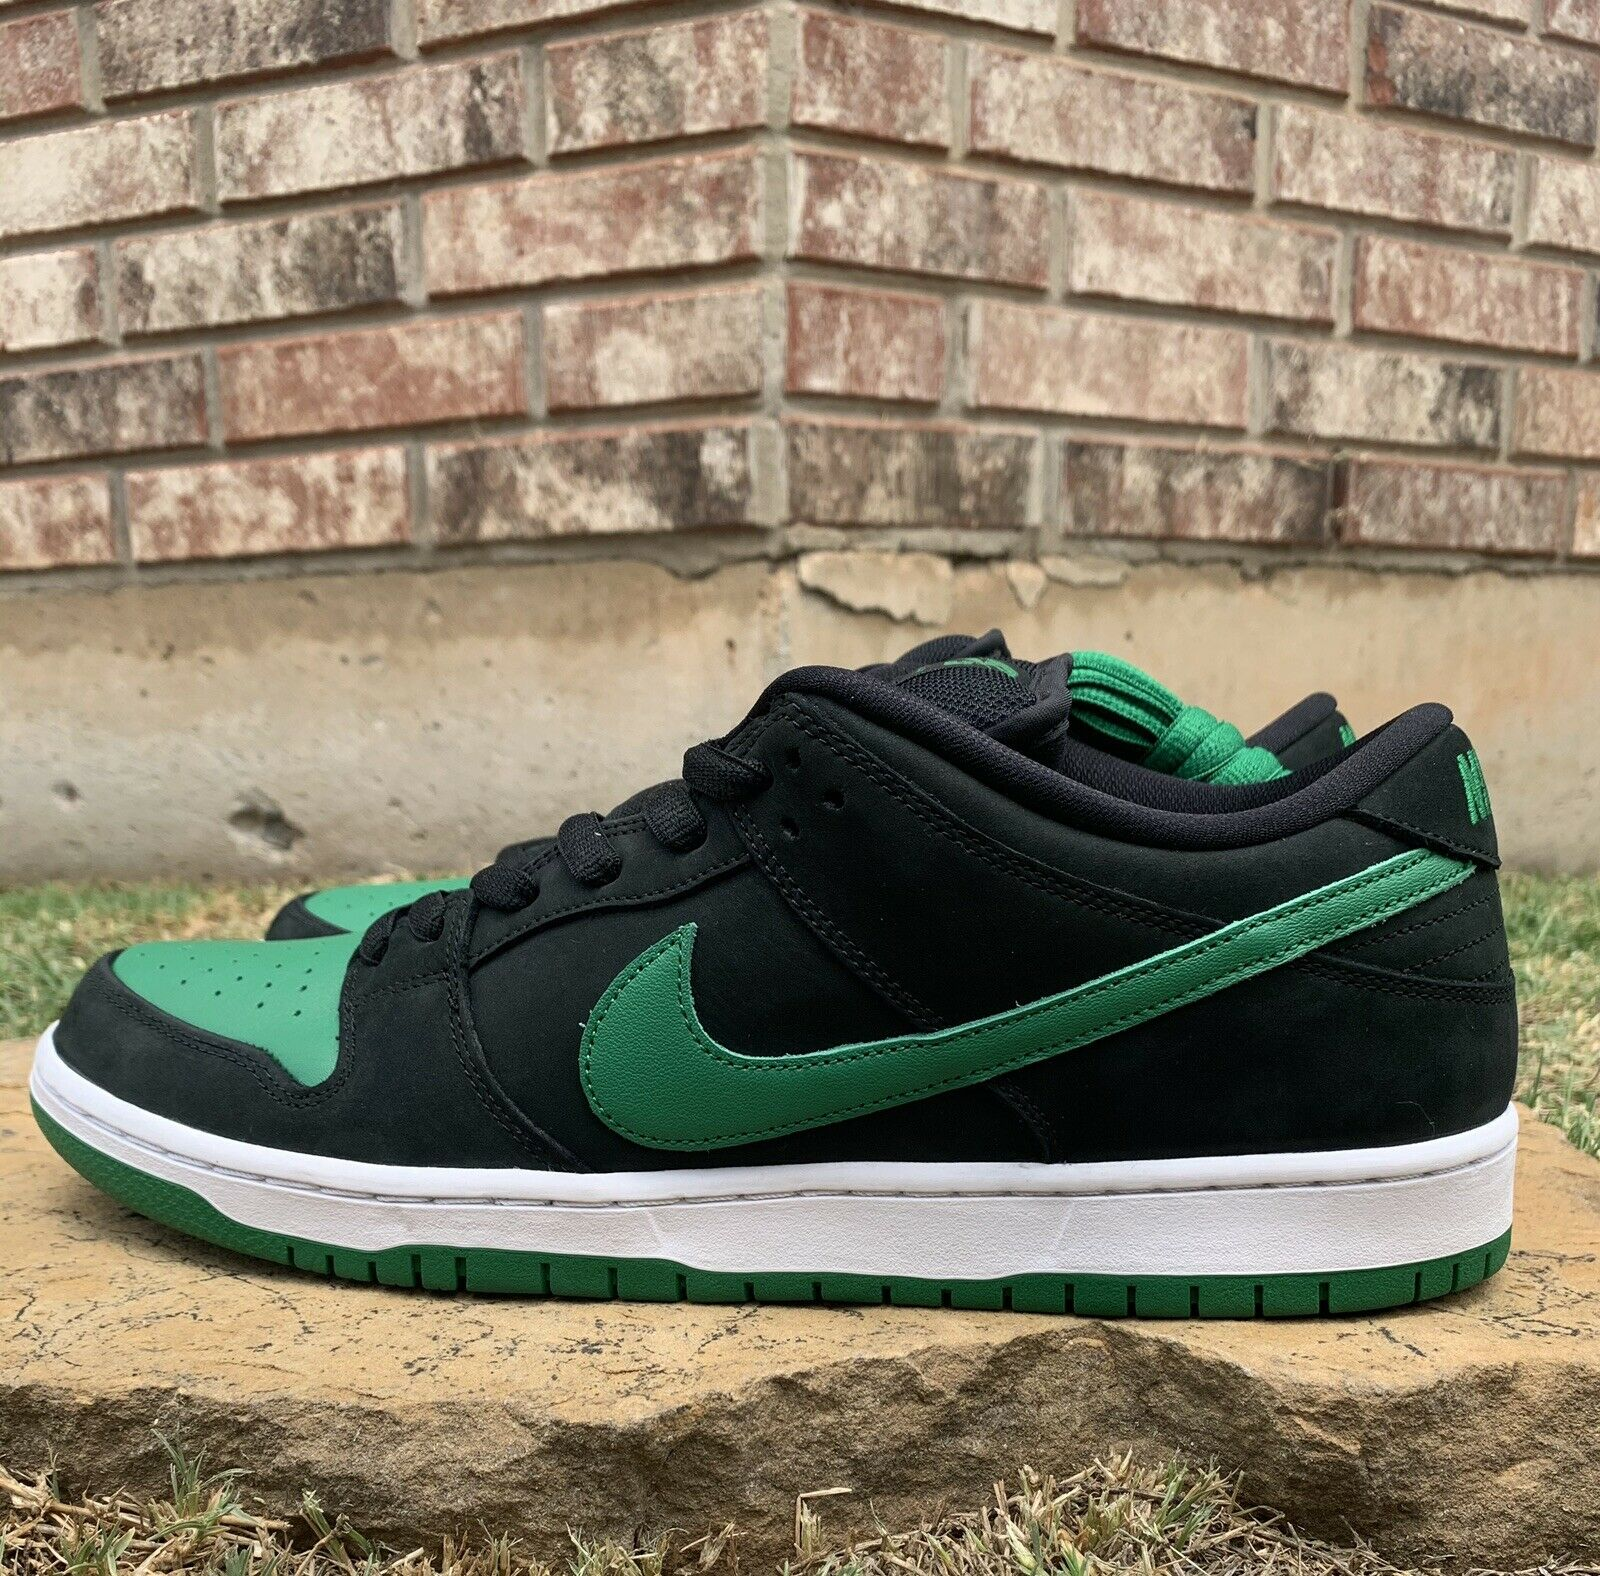 Nike SB Dunk Low Pro J Pack Black Pine Green